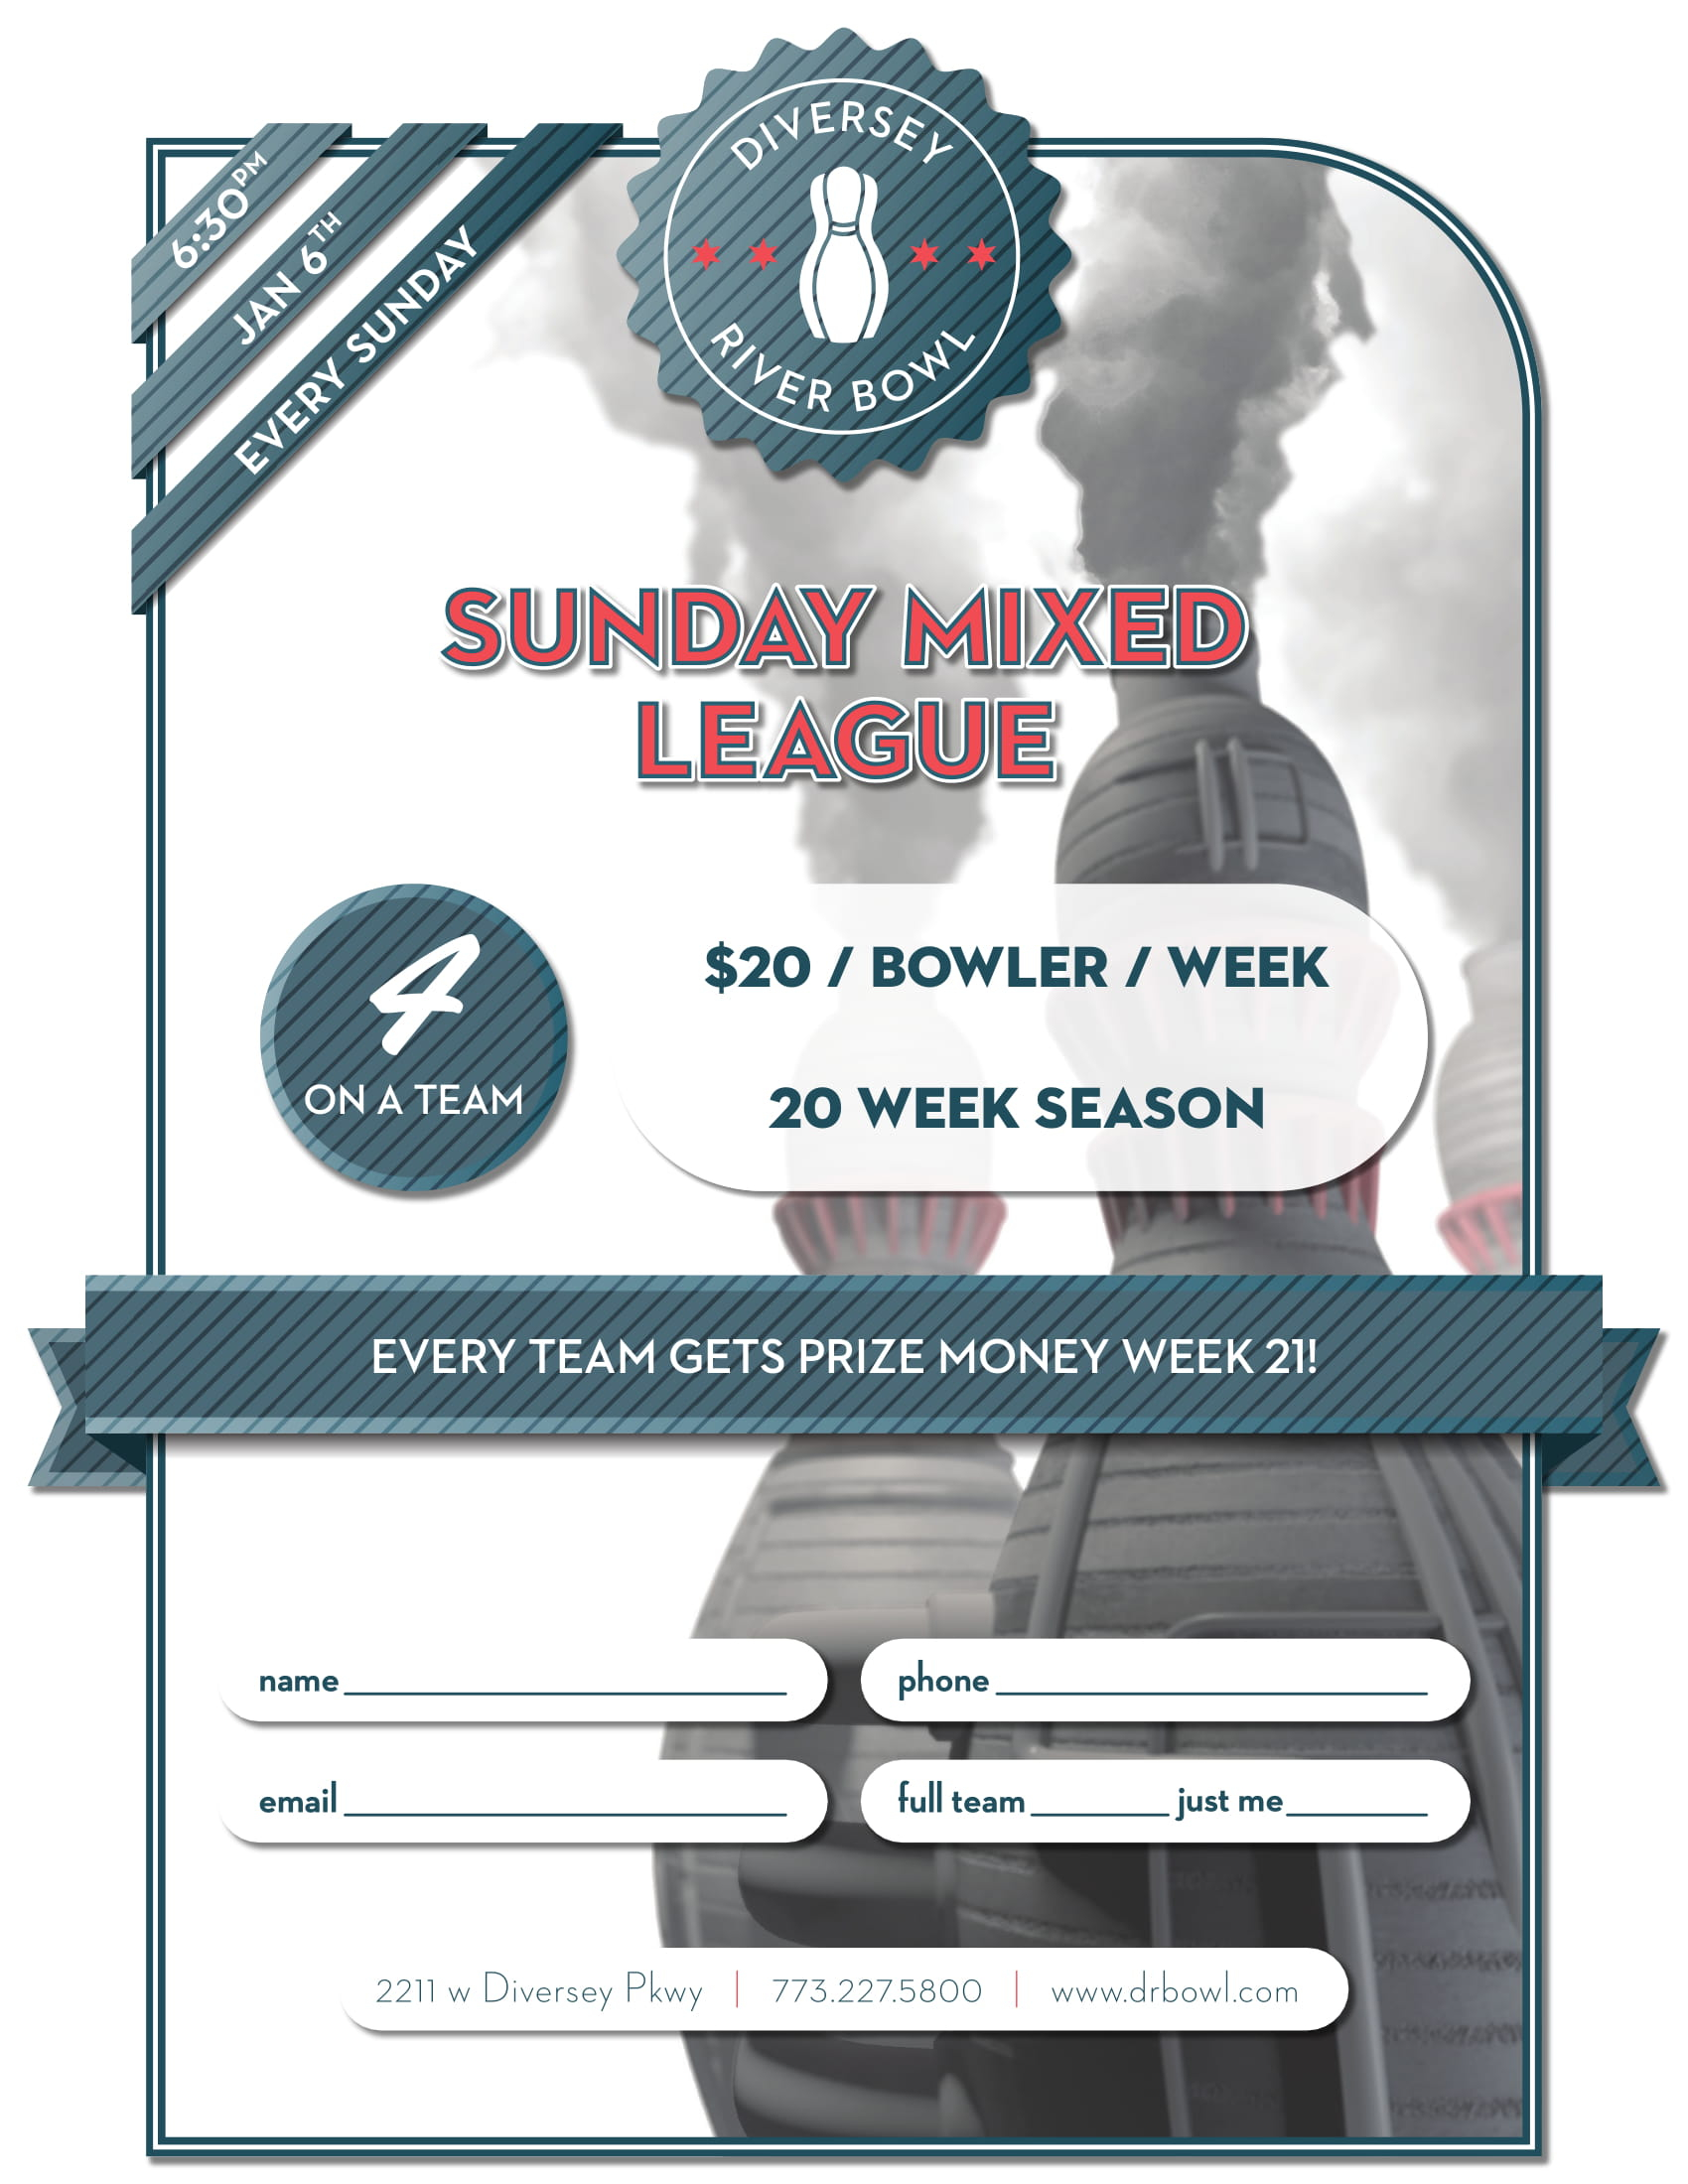 pizza-and-beer(9-5)_league_flyer-1-min